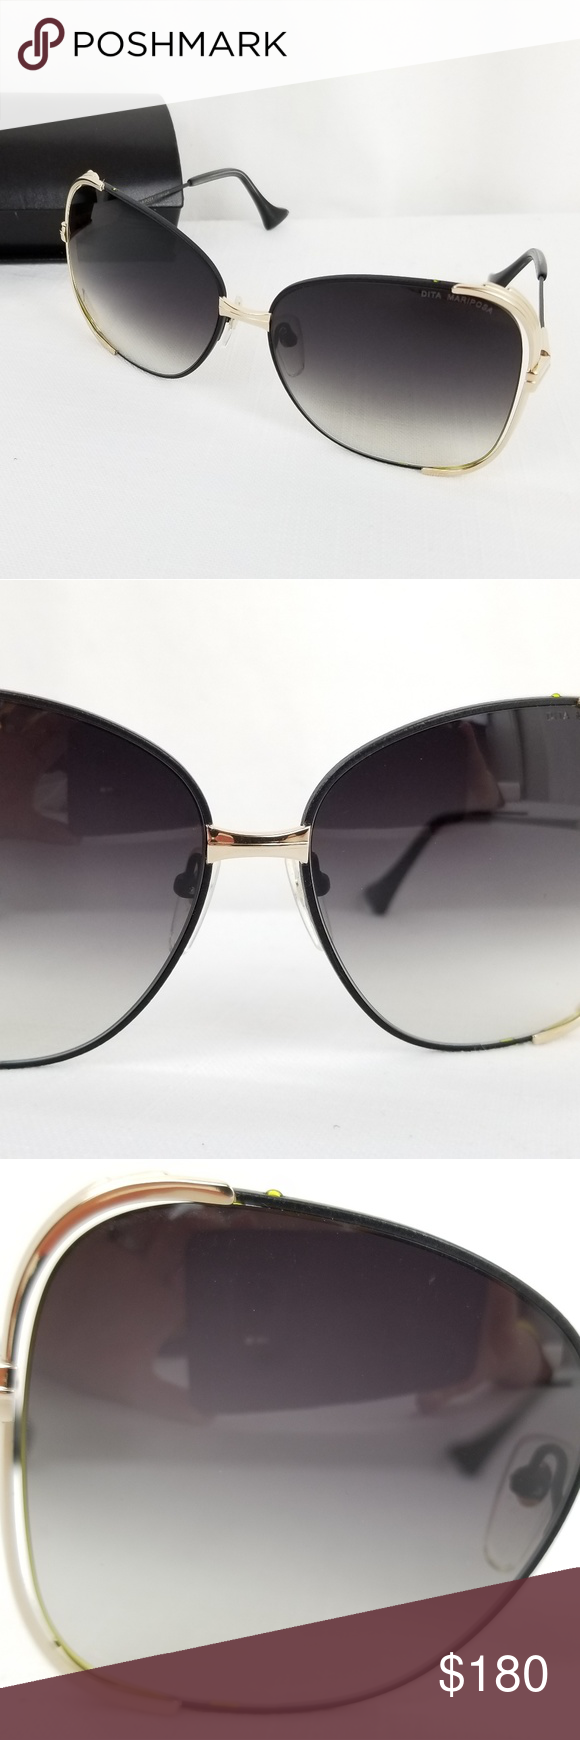 2fcf31b4915 Sunglasses It s pre-owned and in good condition. DITA Accessories Sunglasses